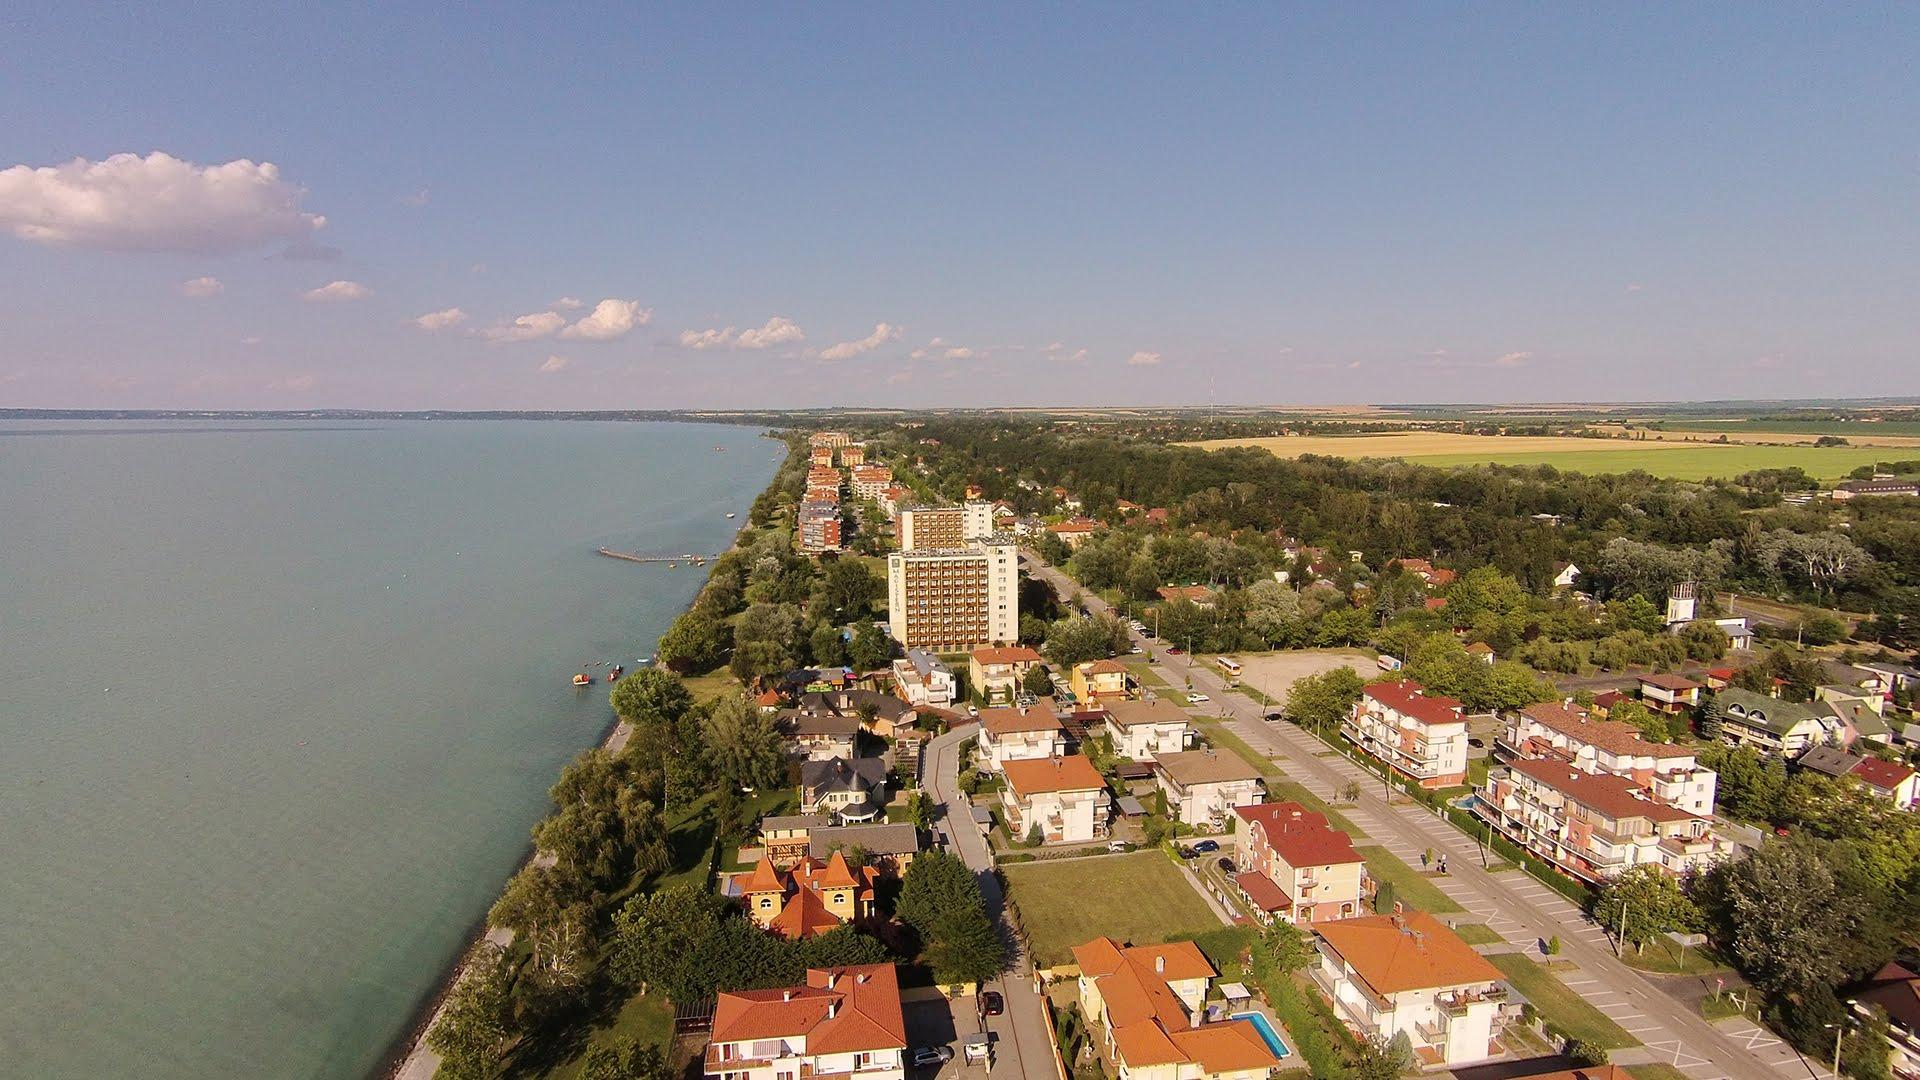 Siófok Welcomes Families, Not Partiers